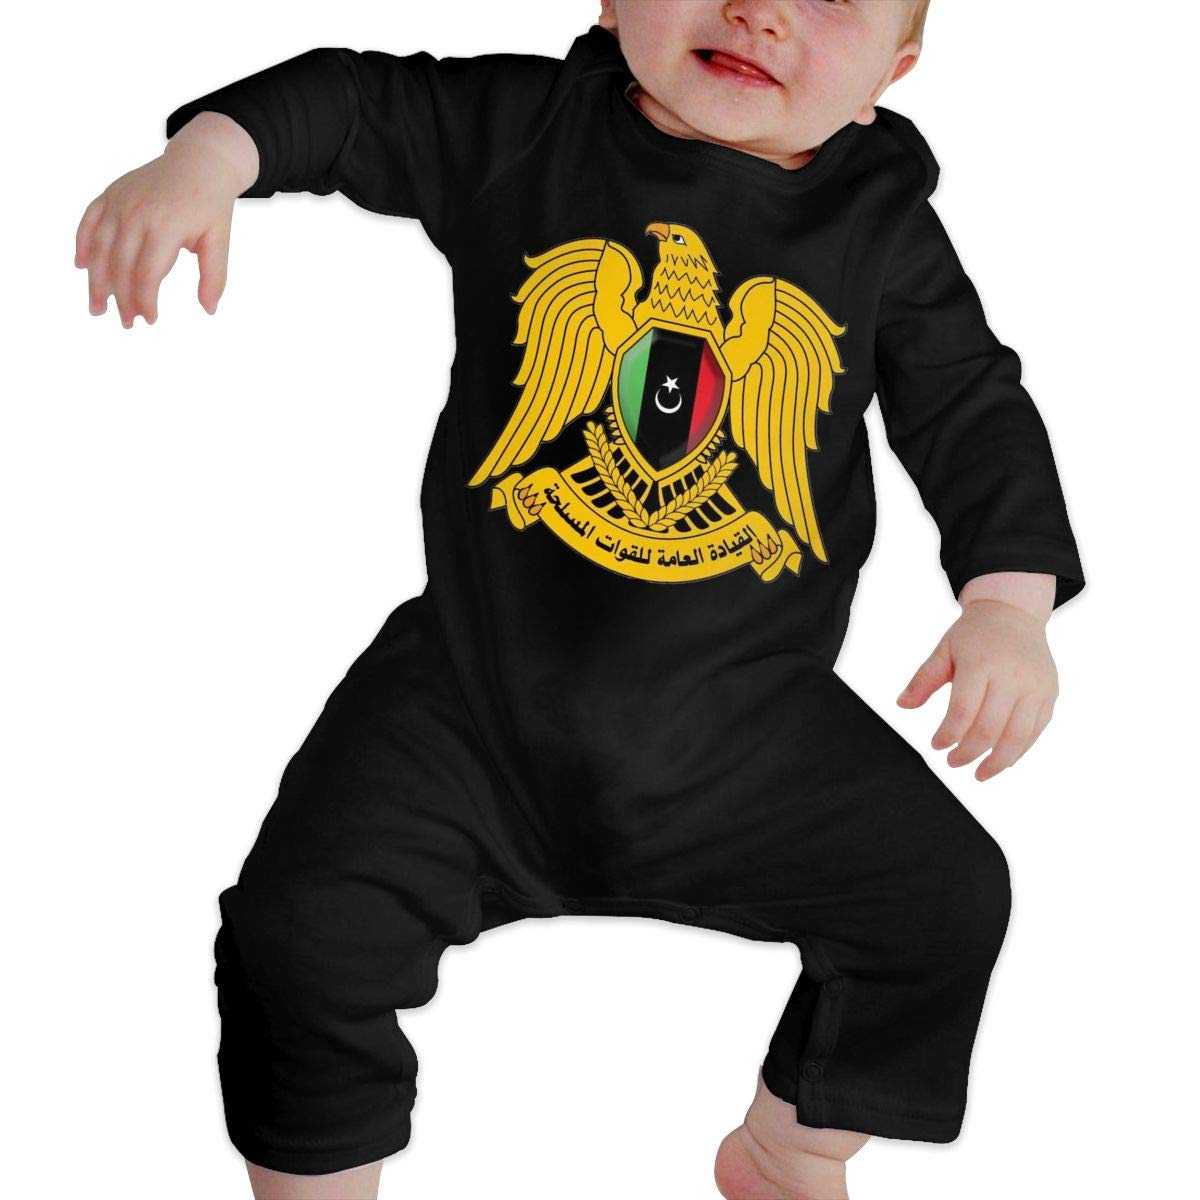 Fasenix Coat of Arms Libya Romper Jumpsuit Long Sleeve Bodysuit Overalls Outfits Clothes for Newborn Baby Boy Girl